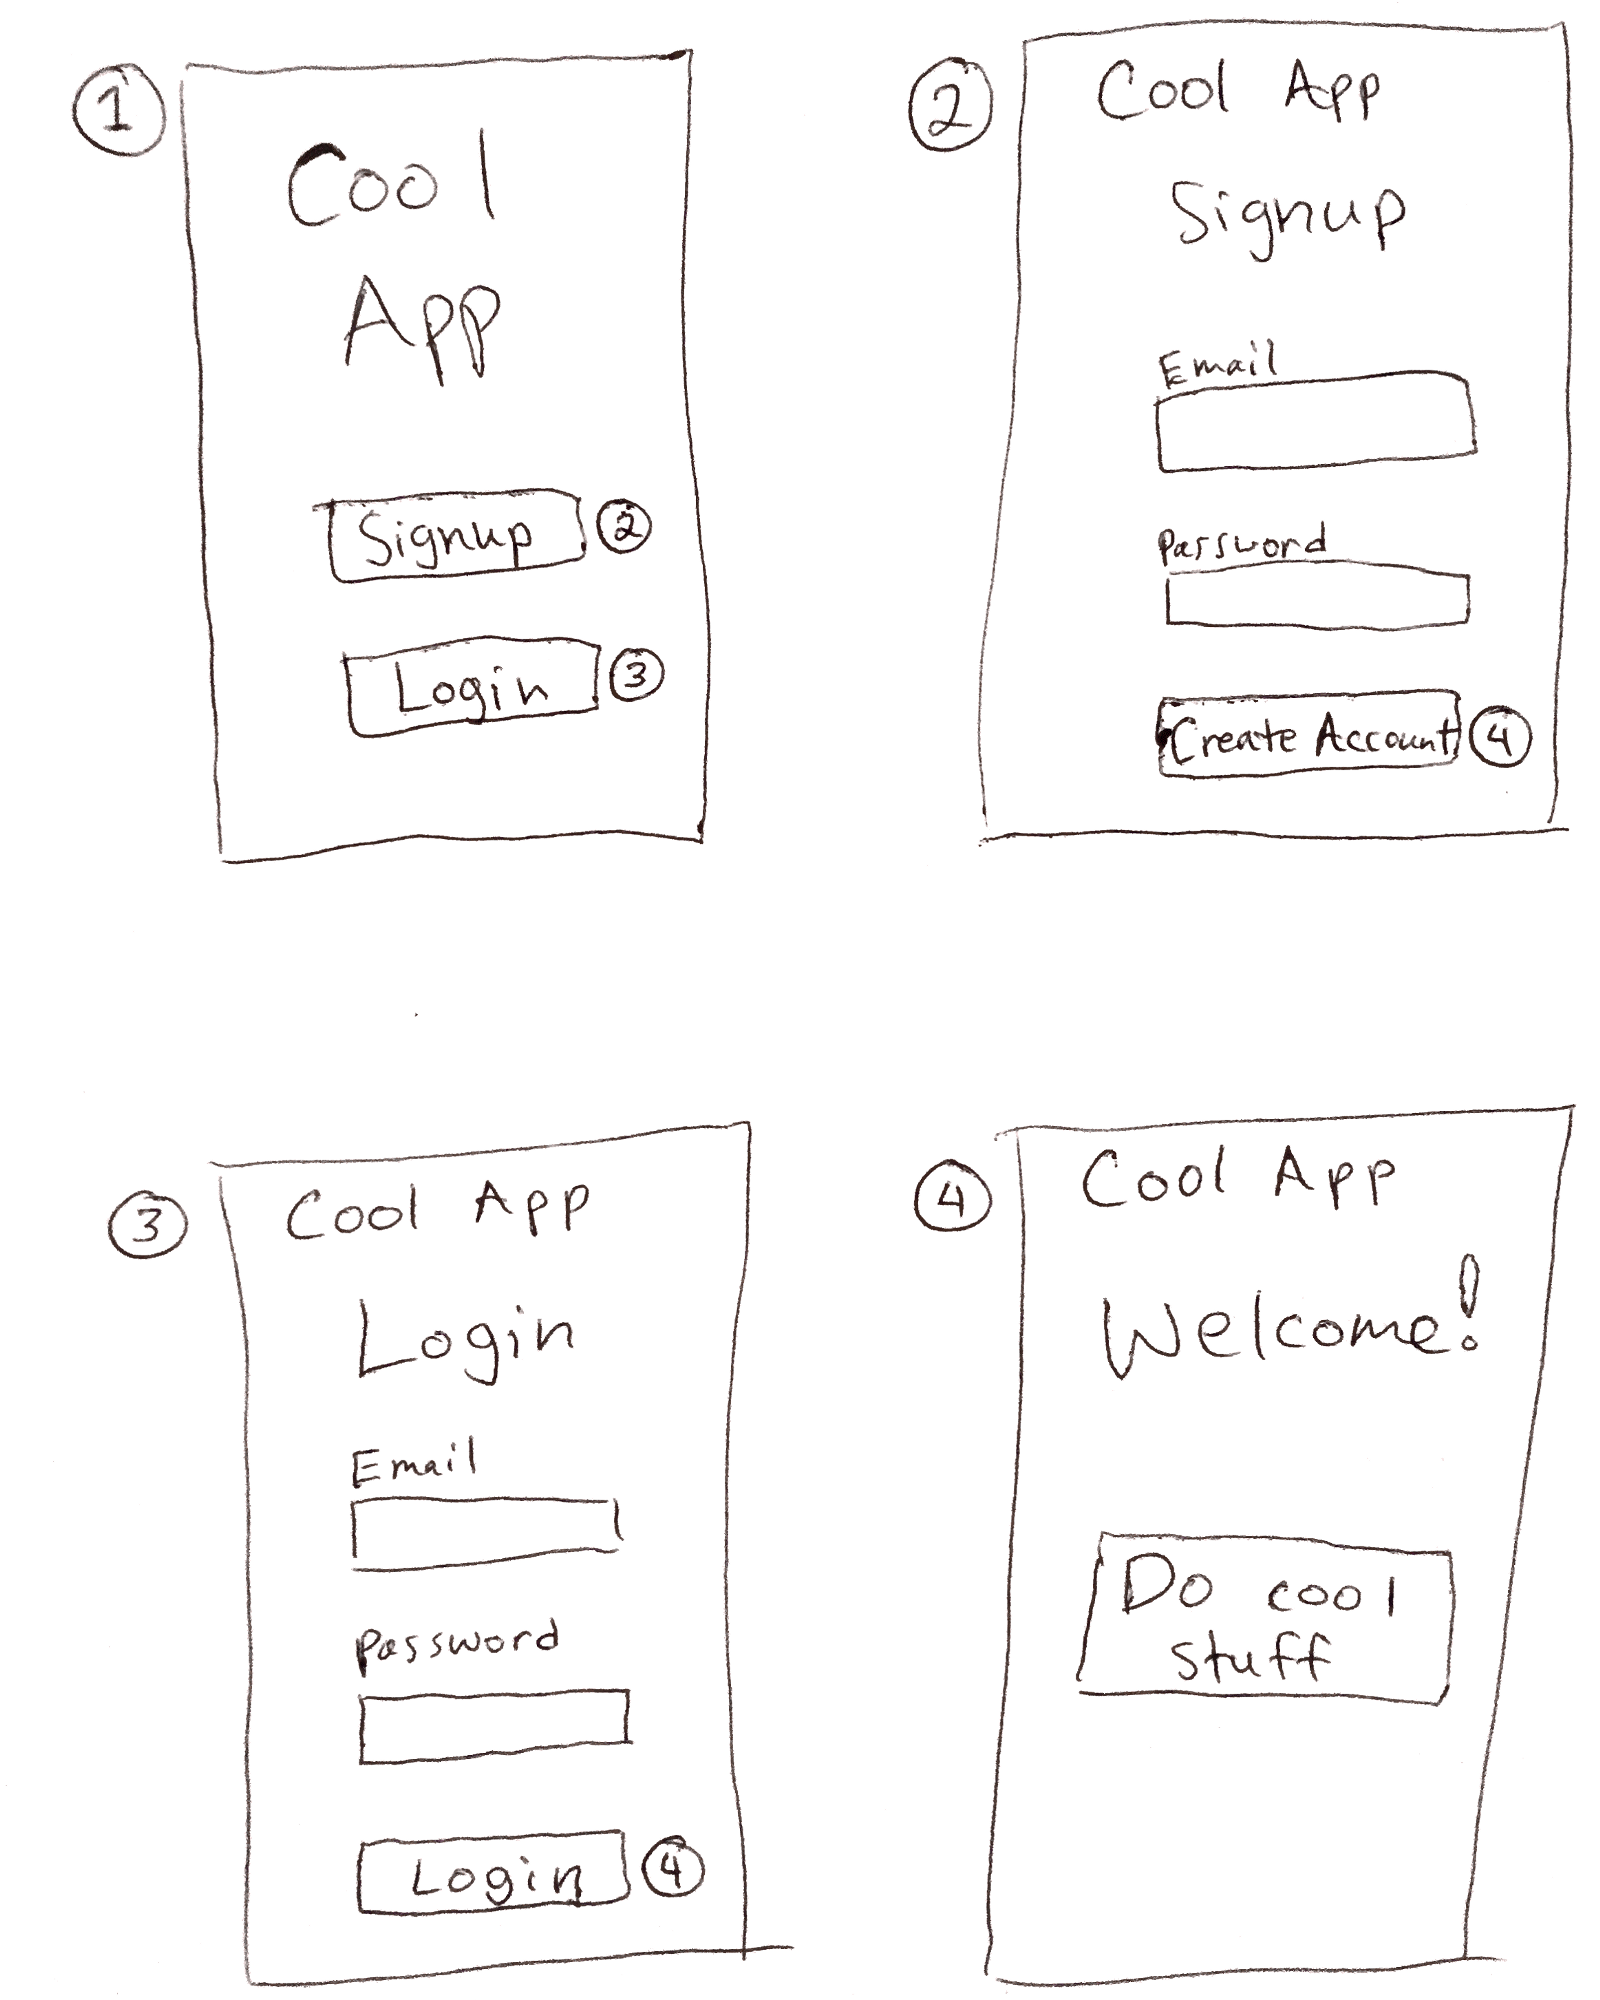 Storyboard For Website Design: How To Storyboard An App Or Website